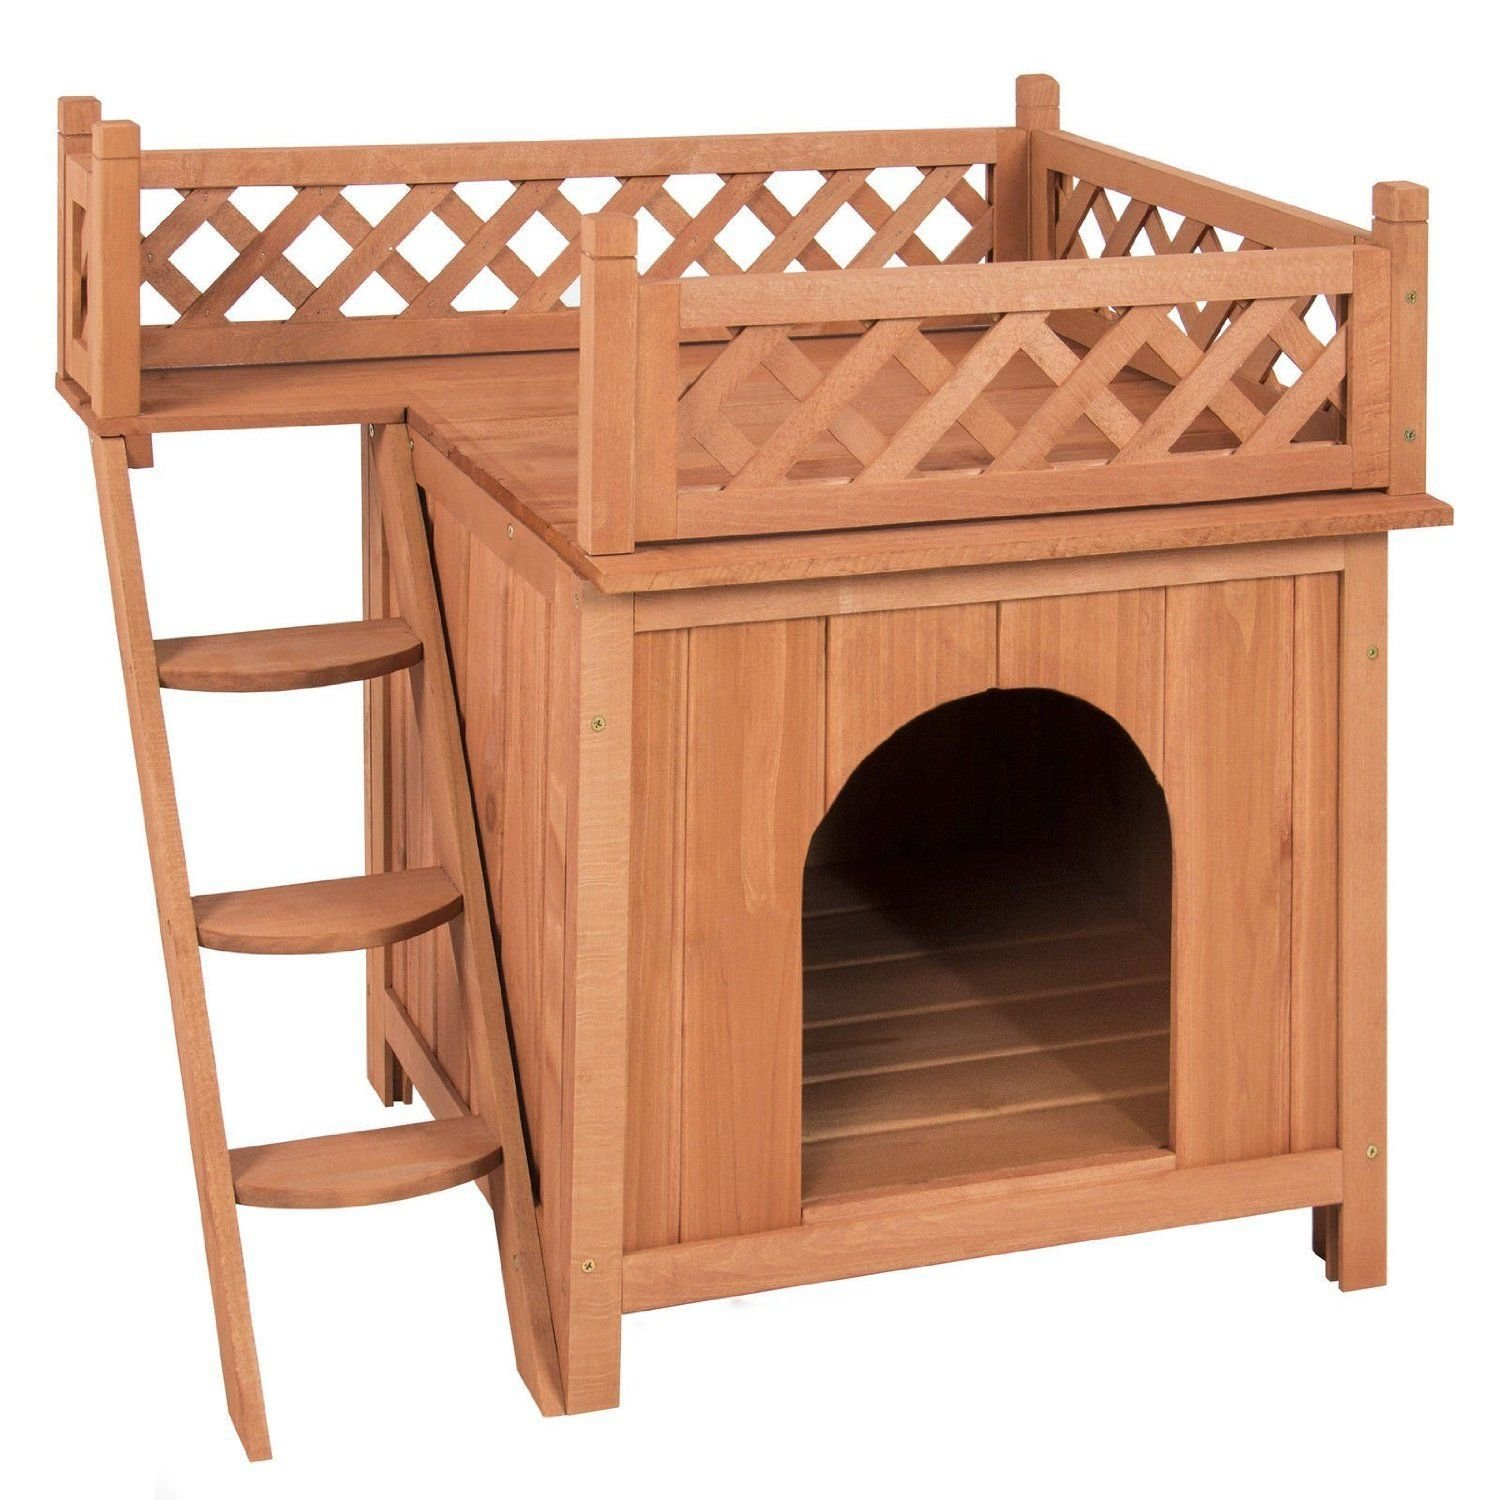 Rhomtree Wood Pet Dog Cat House with Stairs Puppy Room Raised Roof and Balcony Bed Indoor Outdoor Pet Home